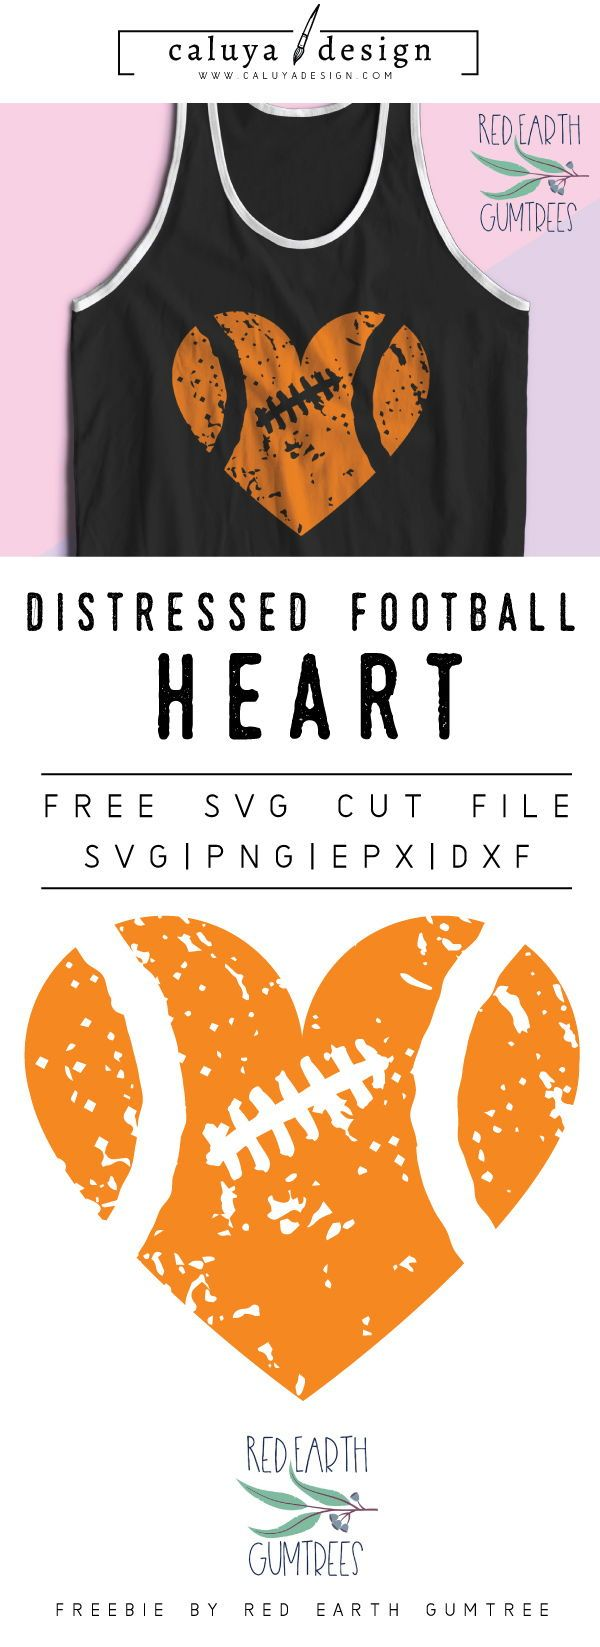 FREE distressed football heart SVG cut file, Printable vector clip art download. Free printable clip art distressed football heart. Compatible with Cameo Silhouette, Cricut explore and other major cutting machines. free for personal use, only $3 for commercial use. Perfect for DIY craft project with Cricut & Cameo Silhouette, card making, scrapbooking, making planner stickers, making vinyl decals, decorating t-shirts with HTV and more! Free SVG cut file, free sport SVG cut file, Football cut…